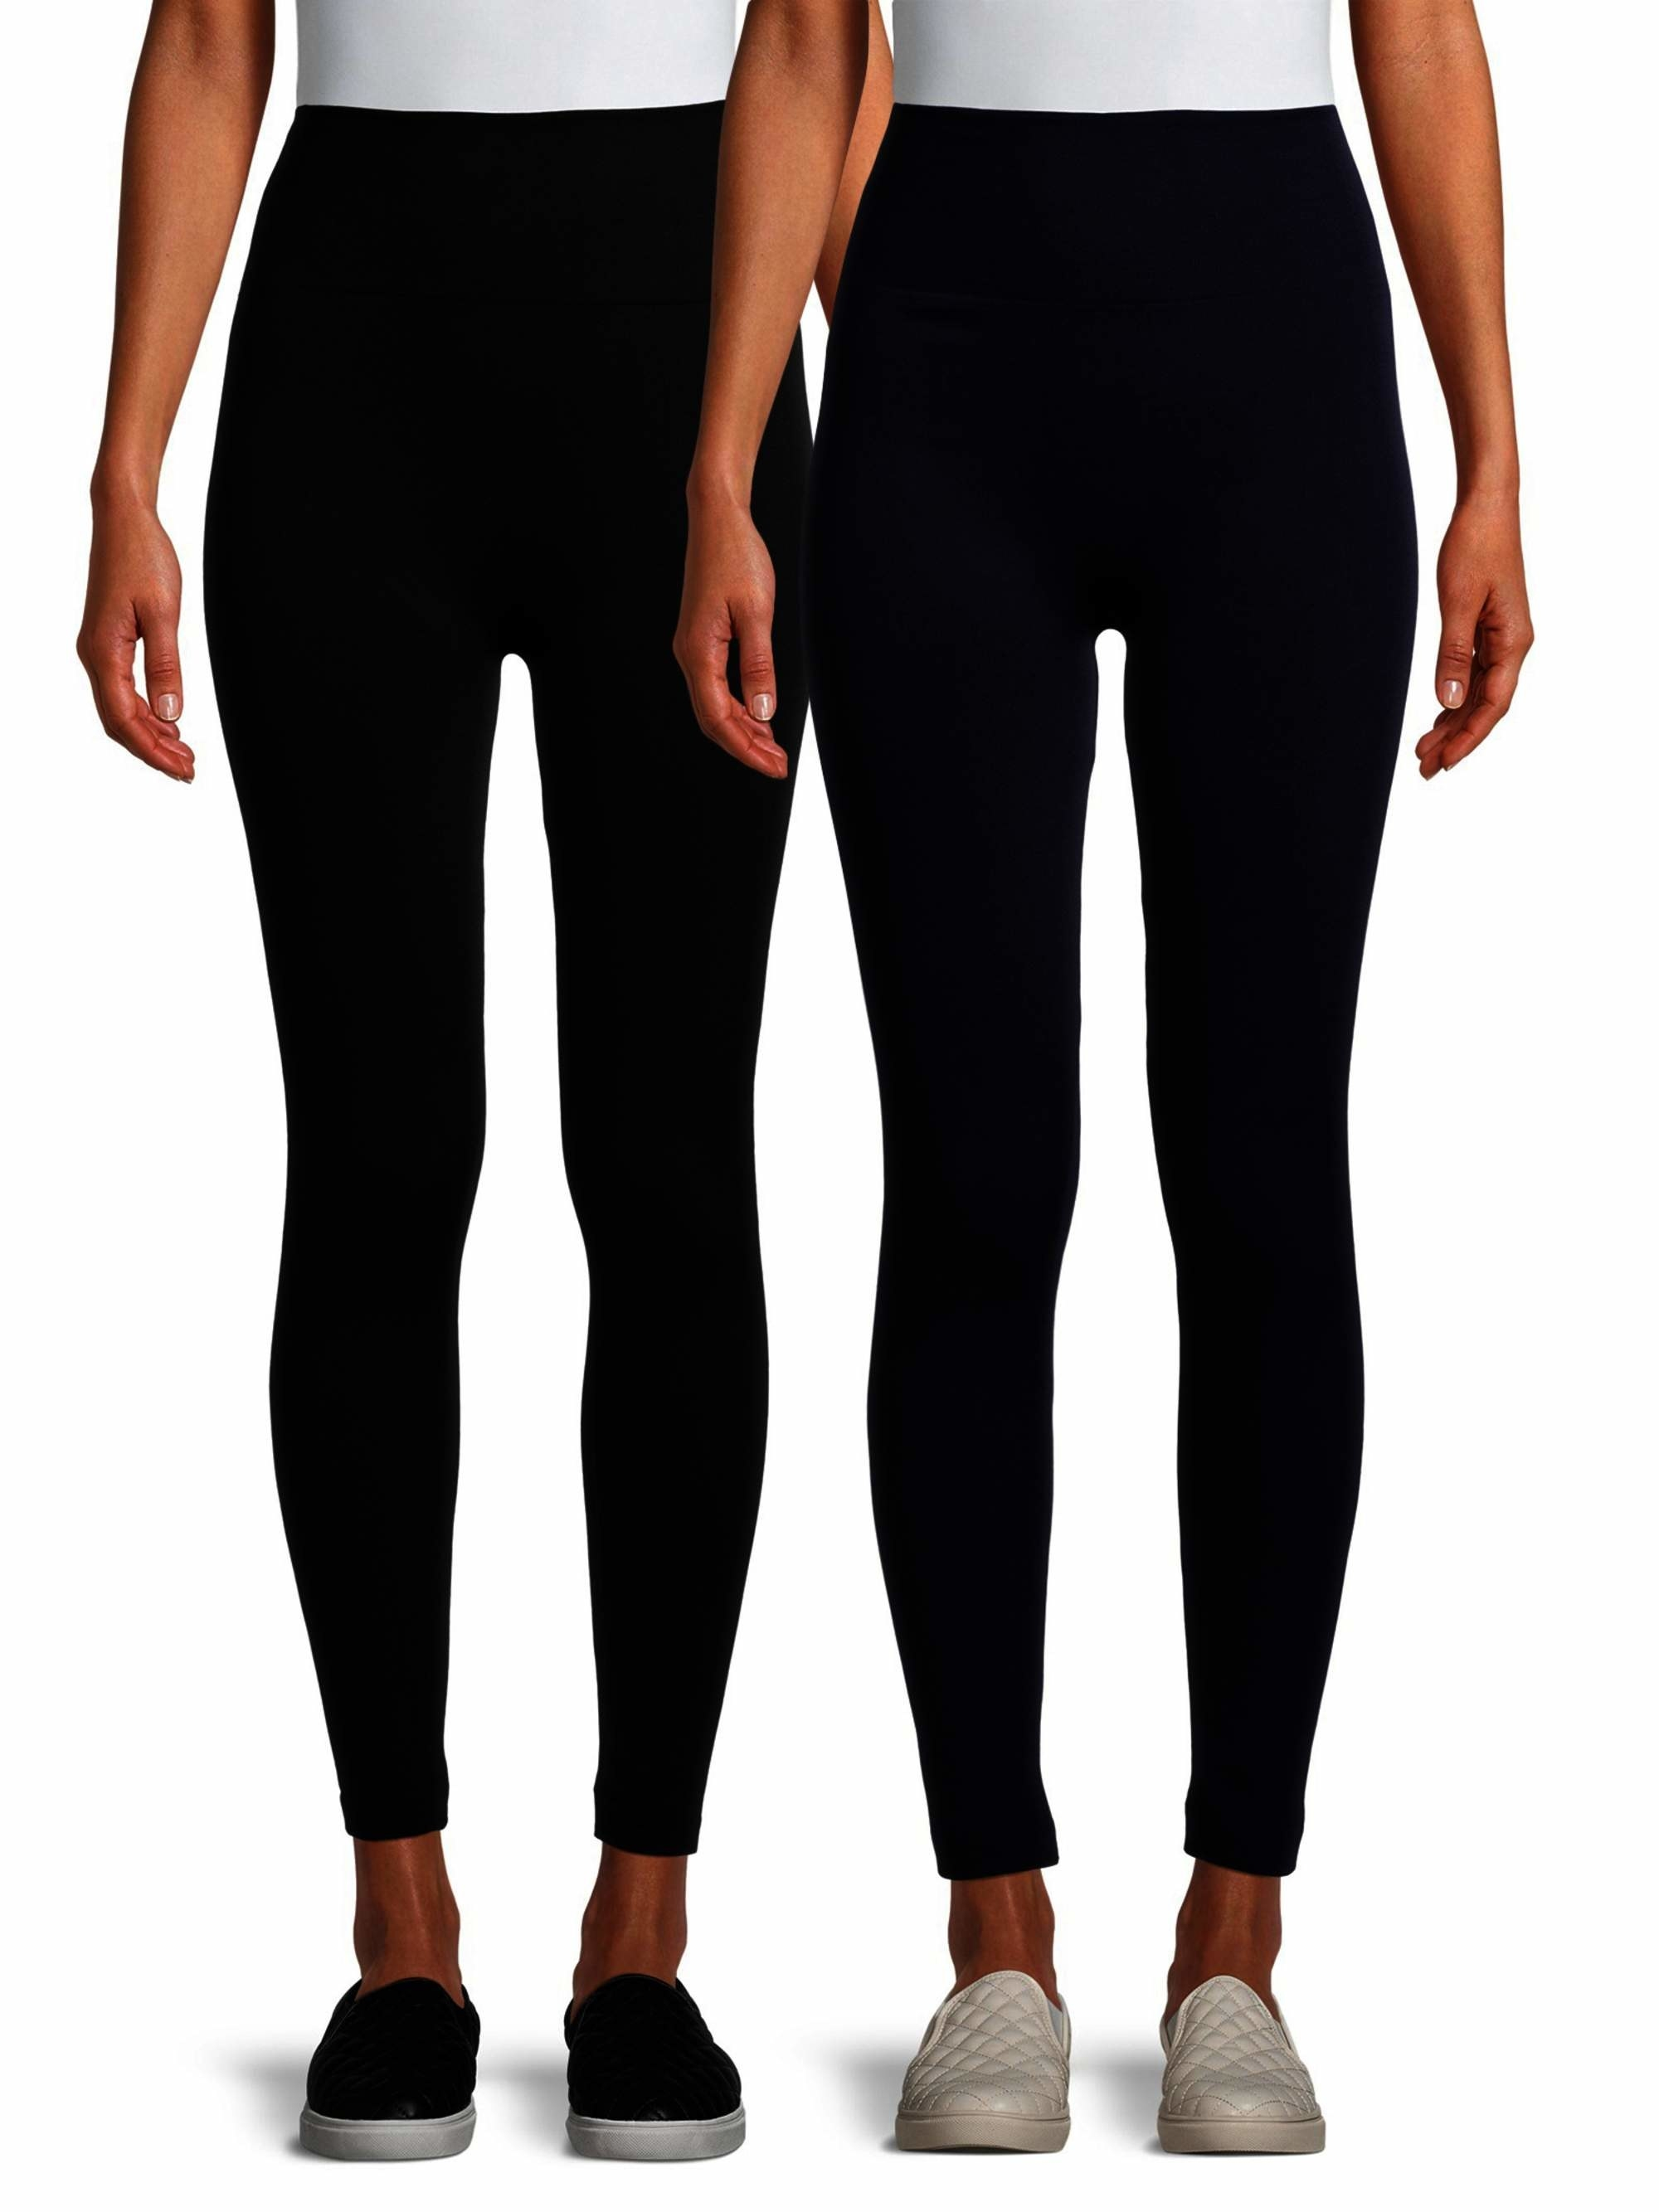 Two models wearing the black leggings